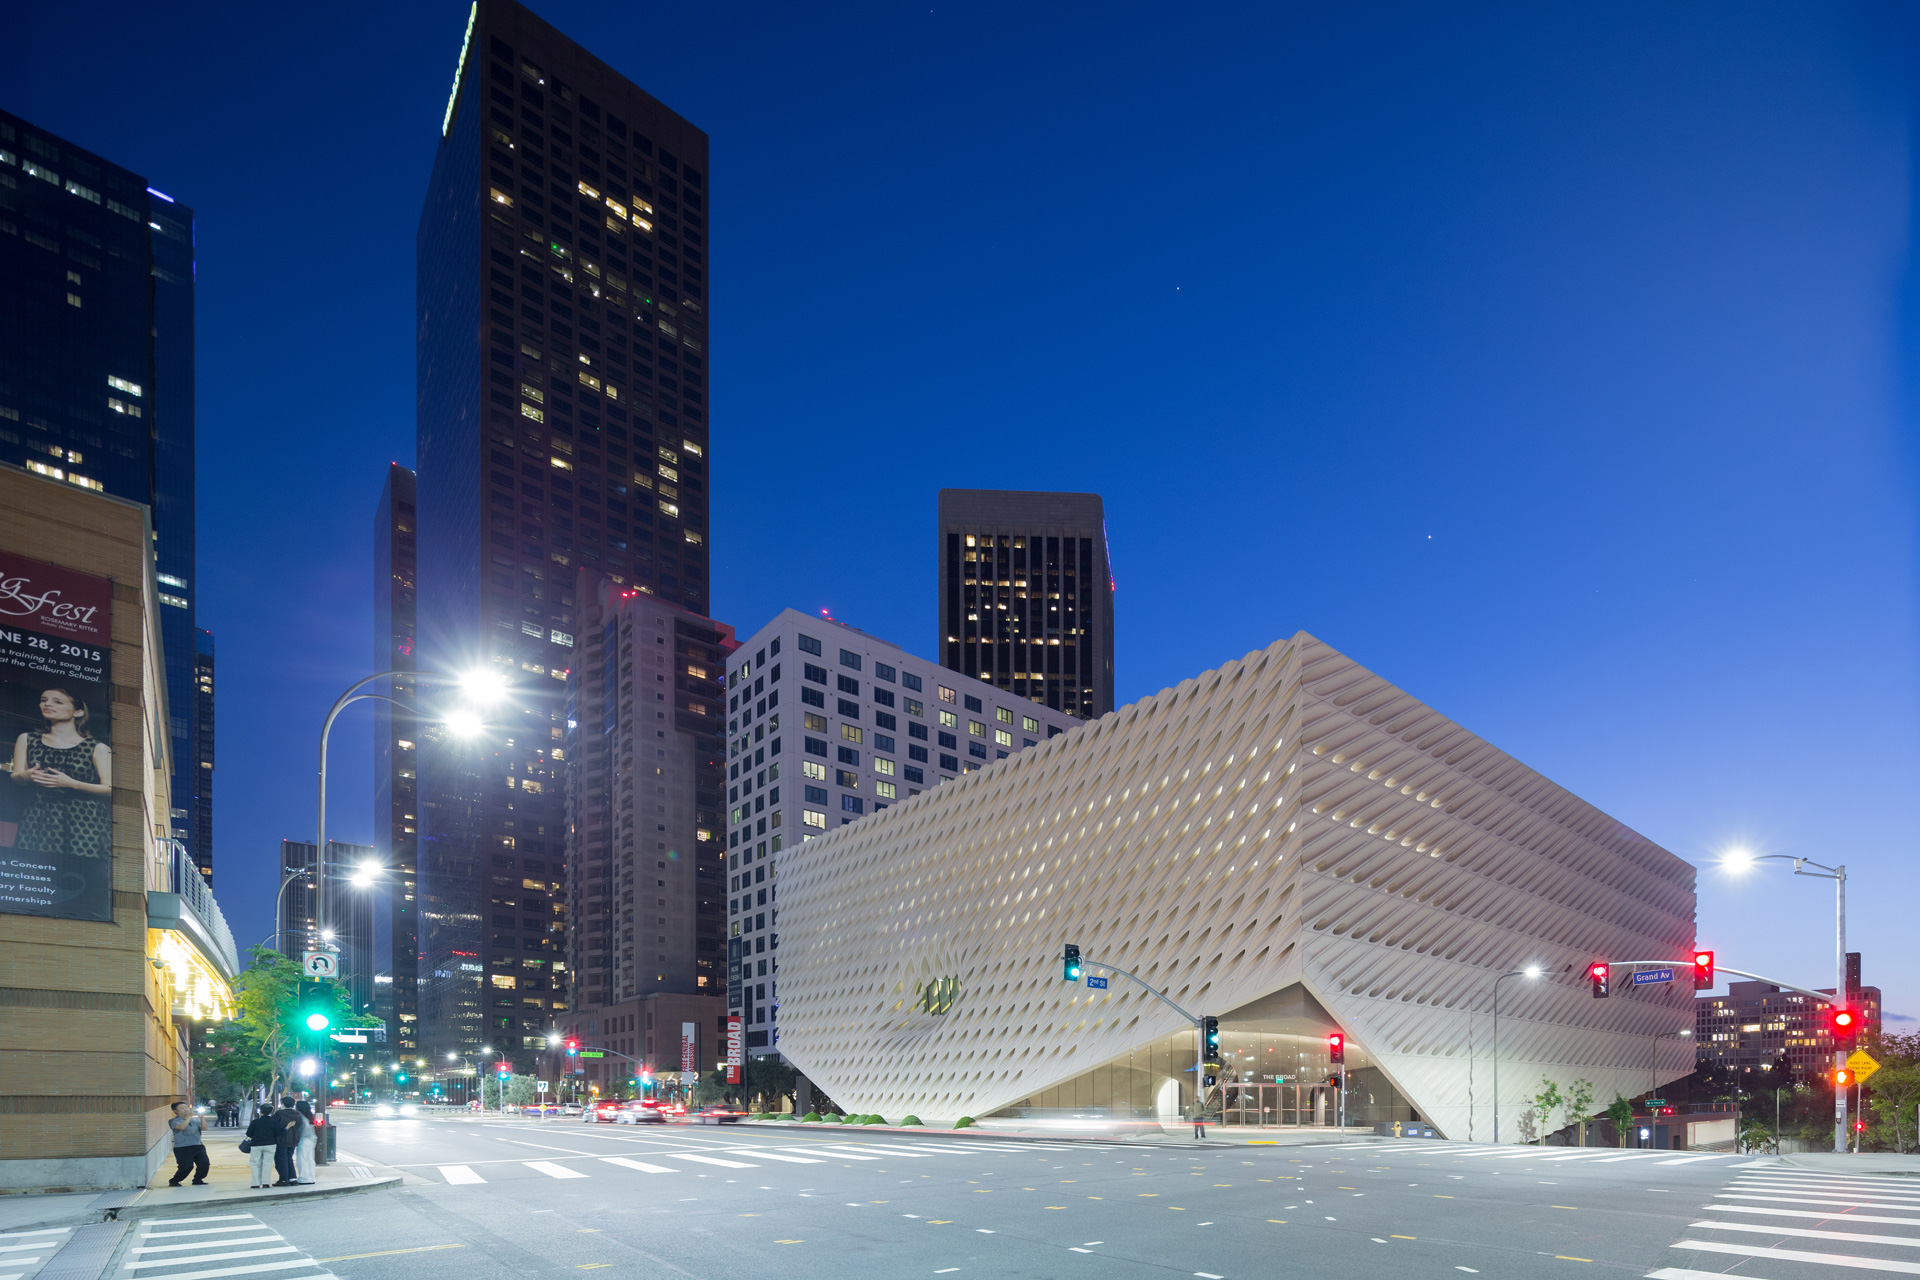 The Broad museum, on Grand Avenue in downtown Los Angeles; photo by Iwan Baan, courtesy of The Broad and Diller Scofidio + Renfro